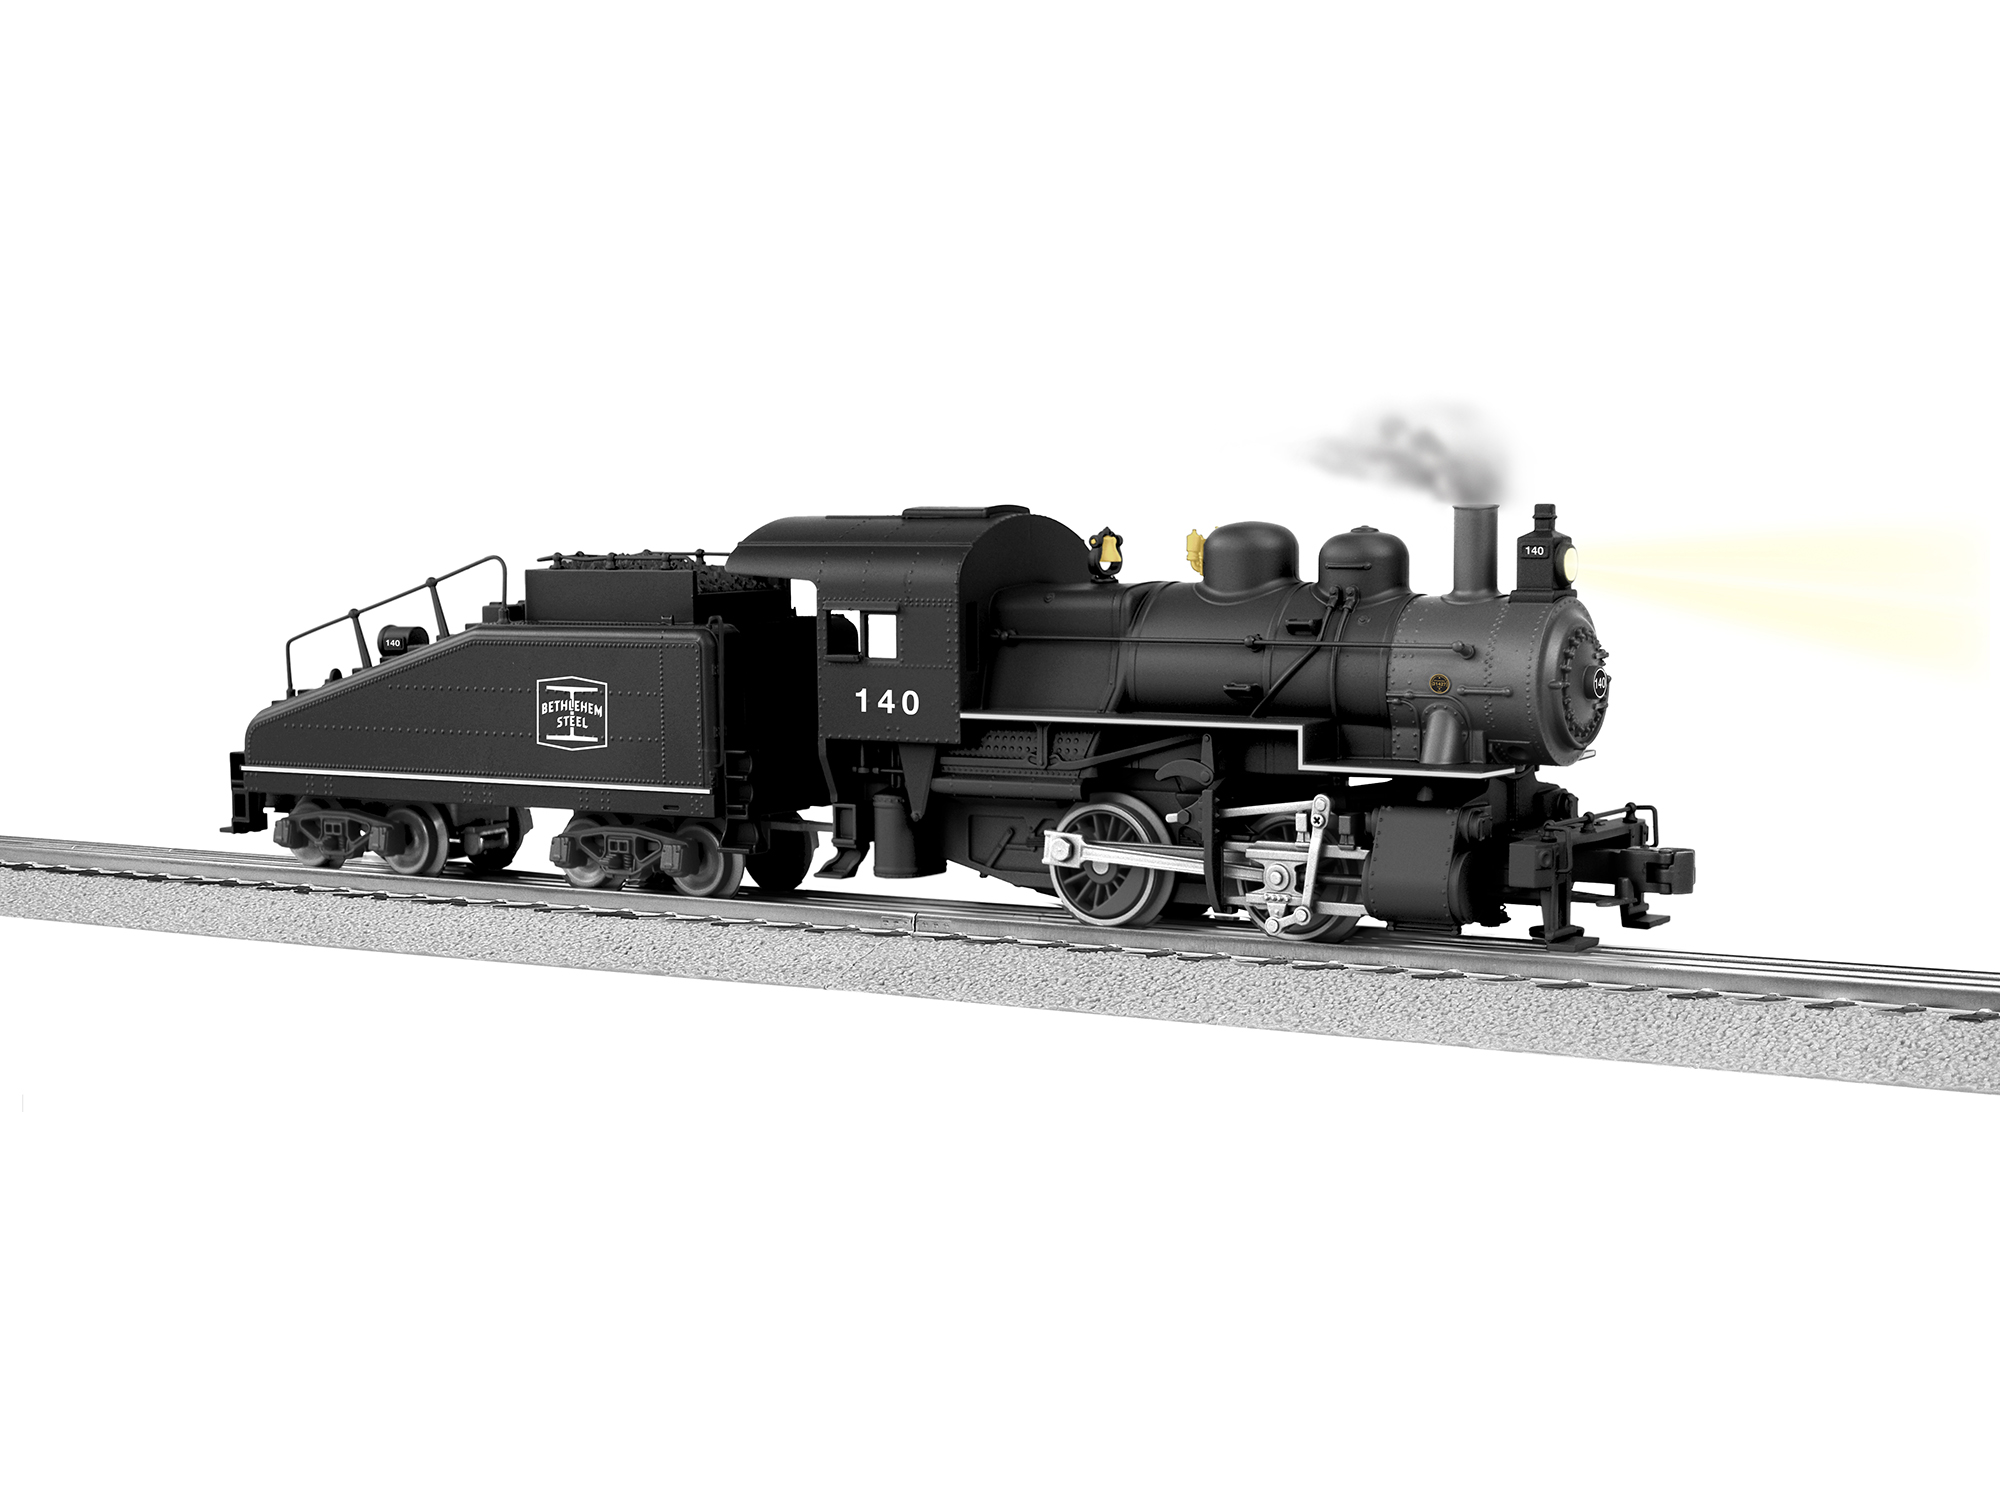 6-82976 BETHLEHEM STEEL LIONCHIEF™ PLUS A5 0-4-0 STEAM LOCO